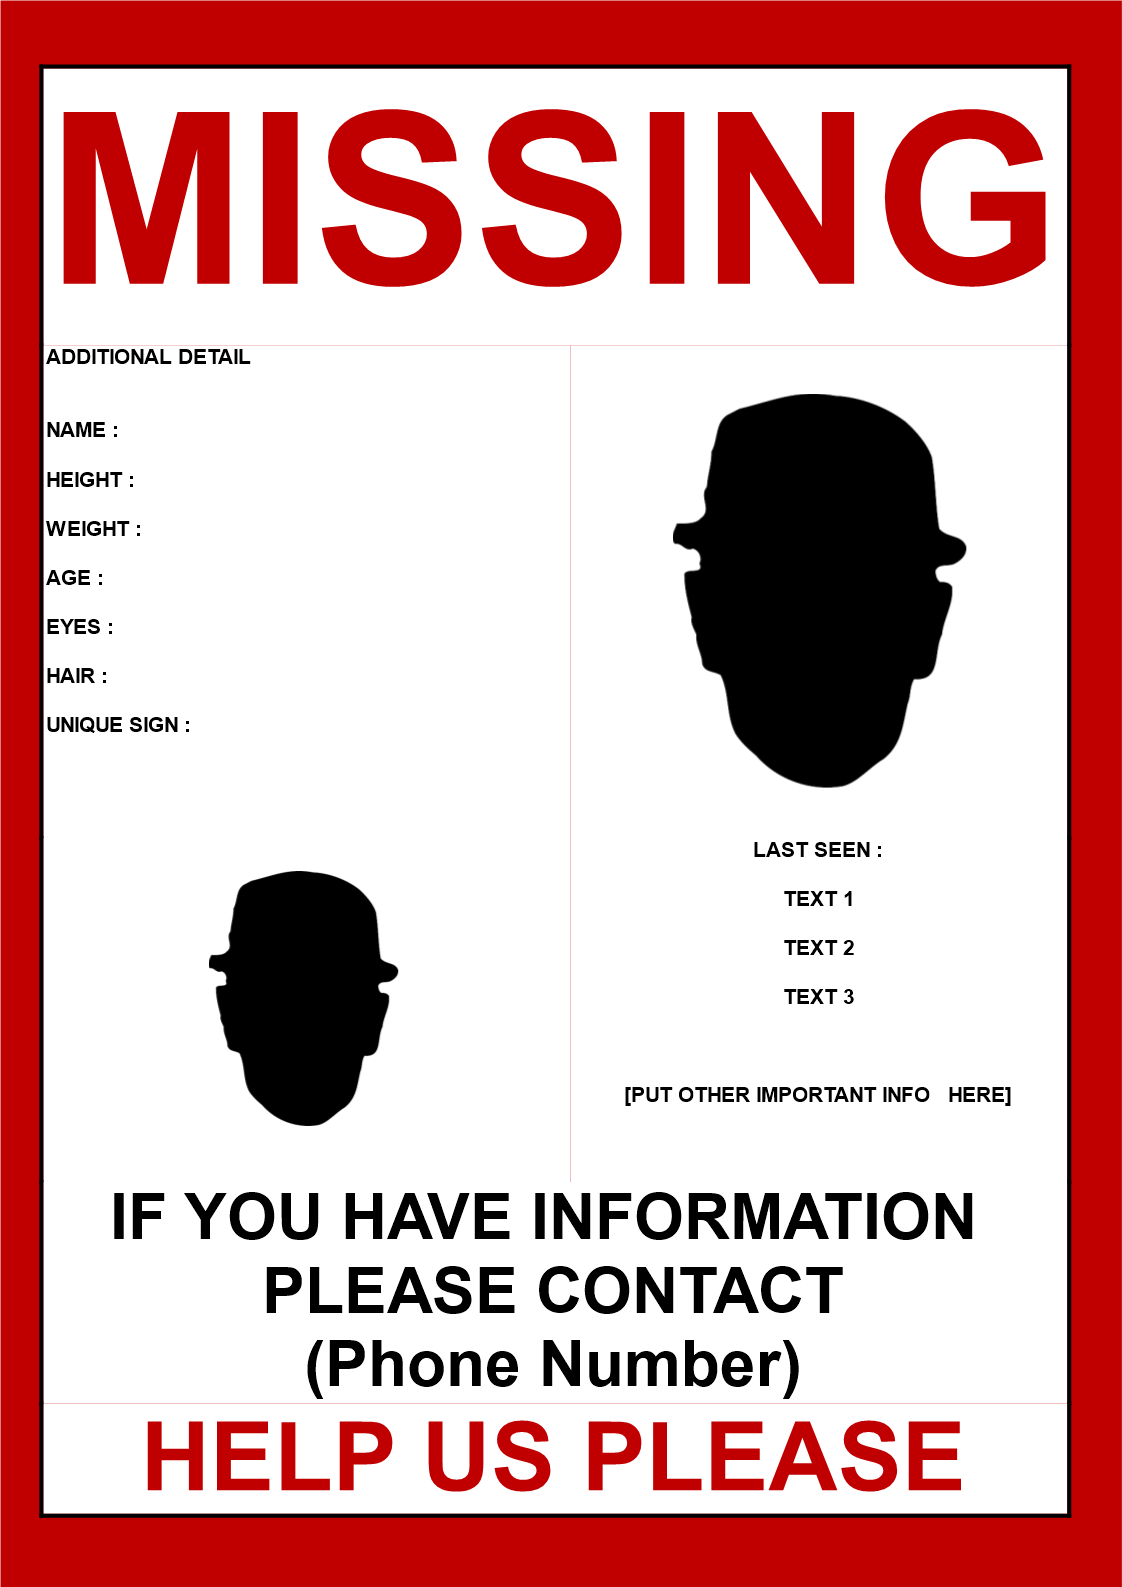 Free Missing person poster template 2 images – Missing Persons Poster Template